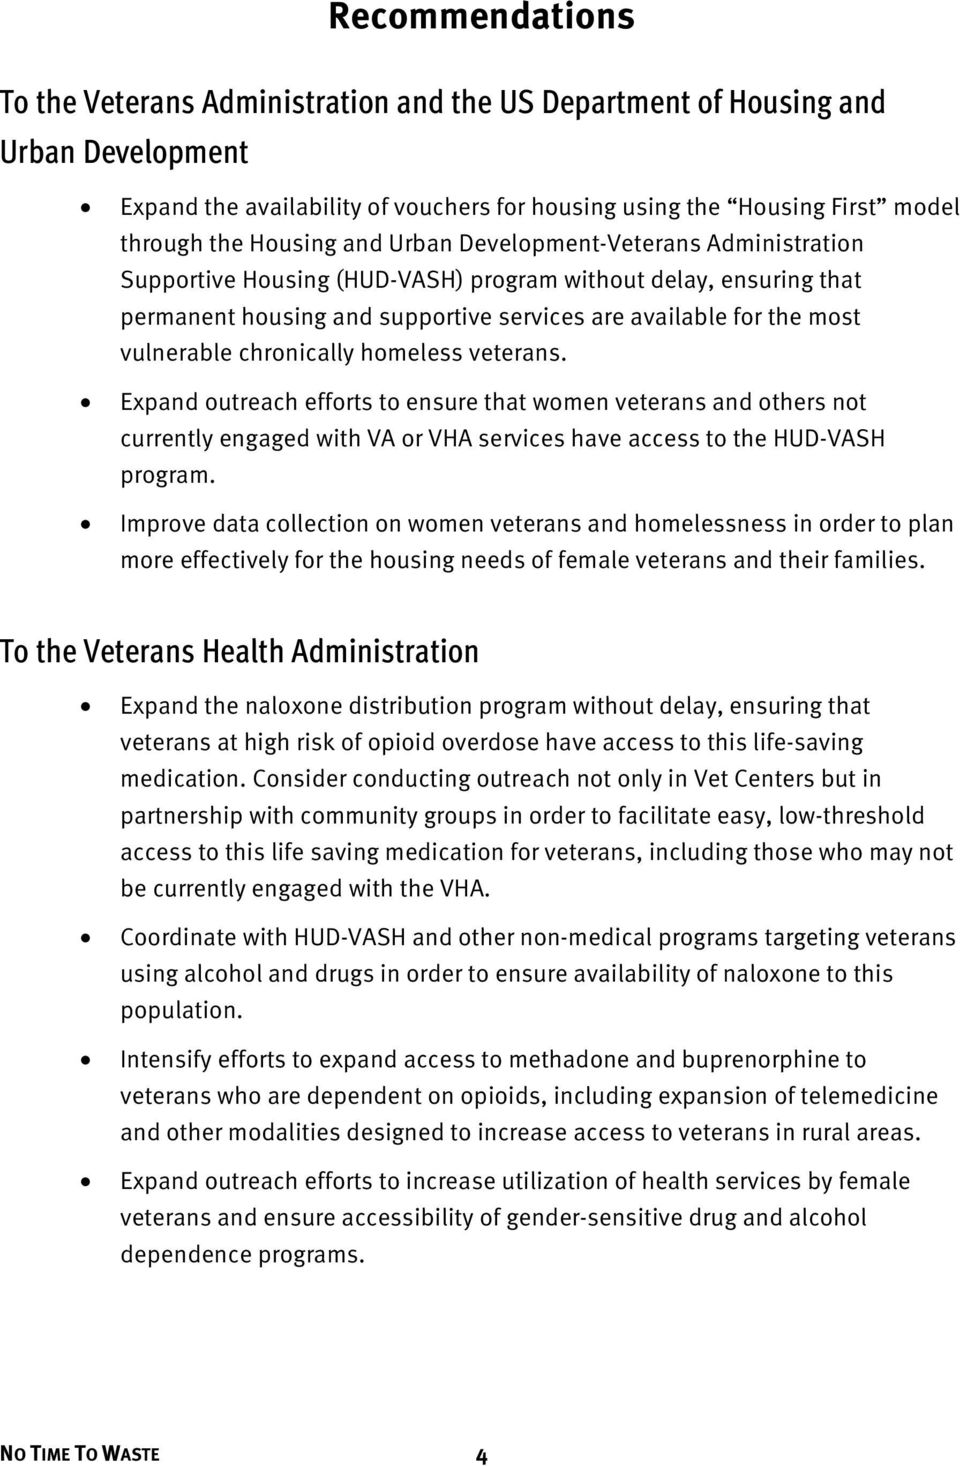 chronically homeless veterans. Expand outreach efforts to ensure that women veterans and others not currently engaged with VA or VHA services have access to the HUD-VASH program.